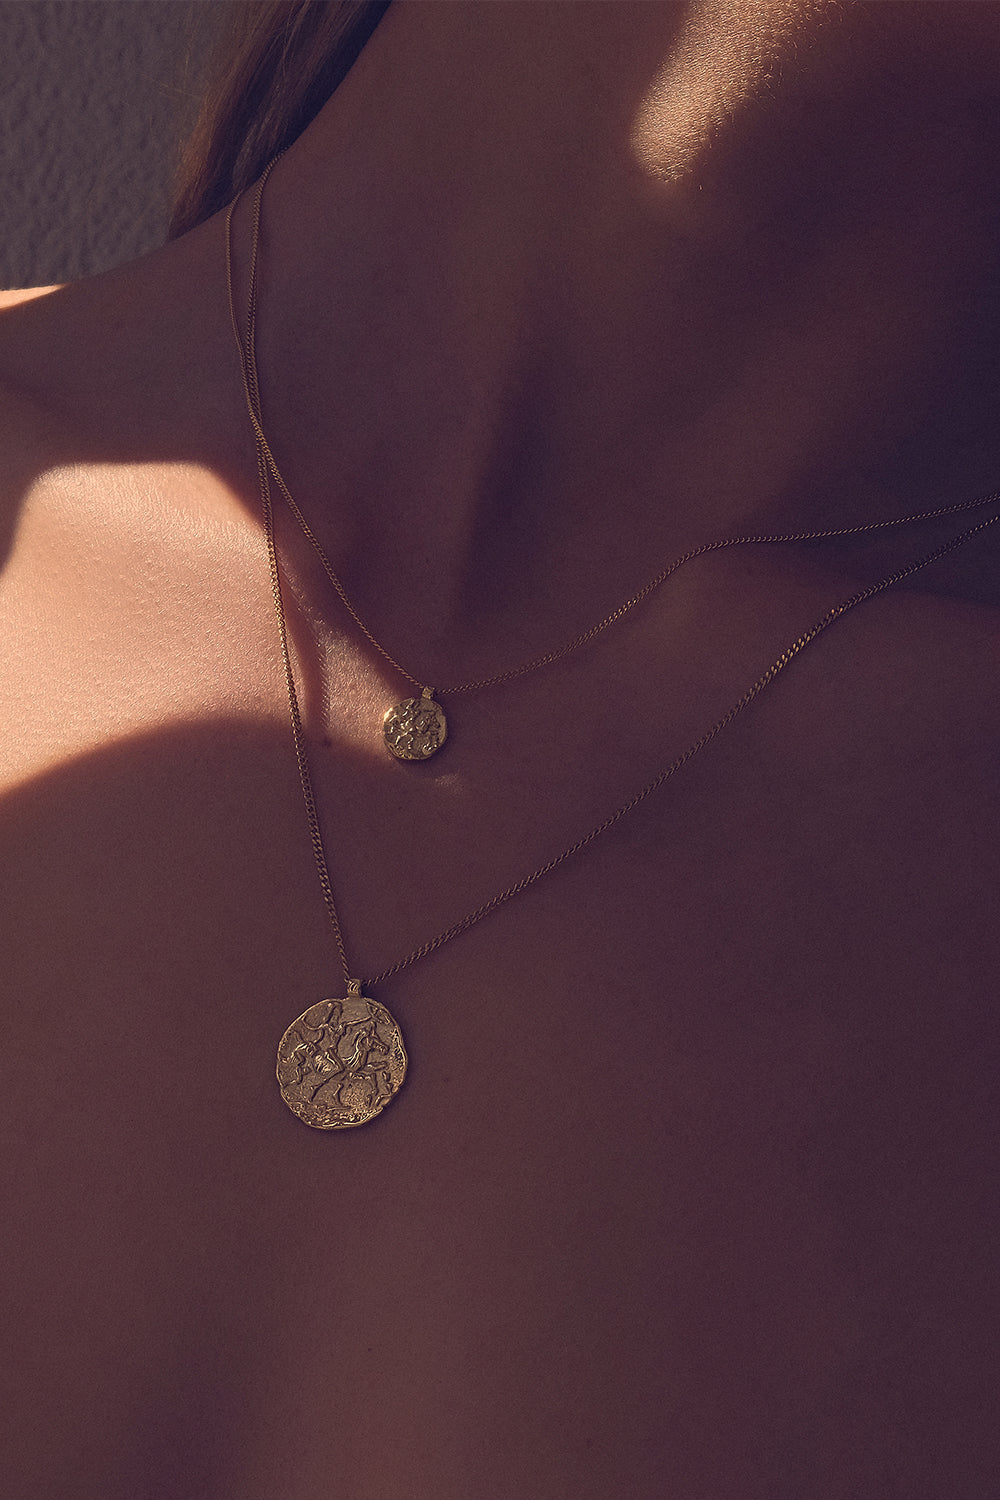 Mini Coin Necklace | 9K Yellow Gold